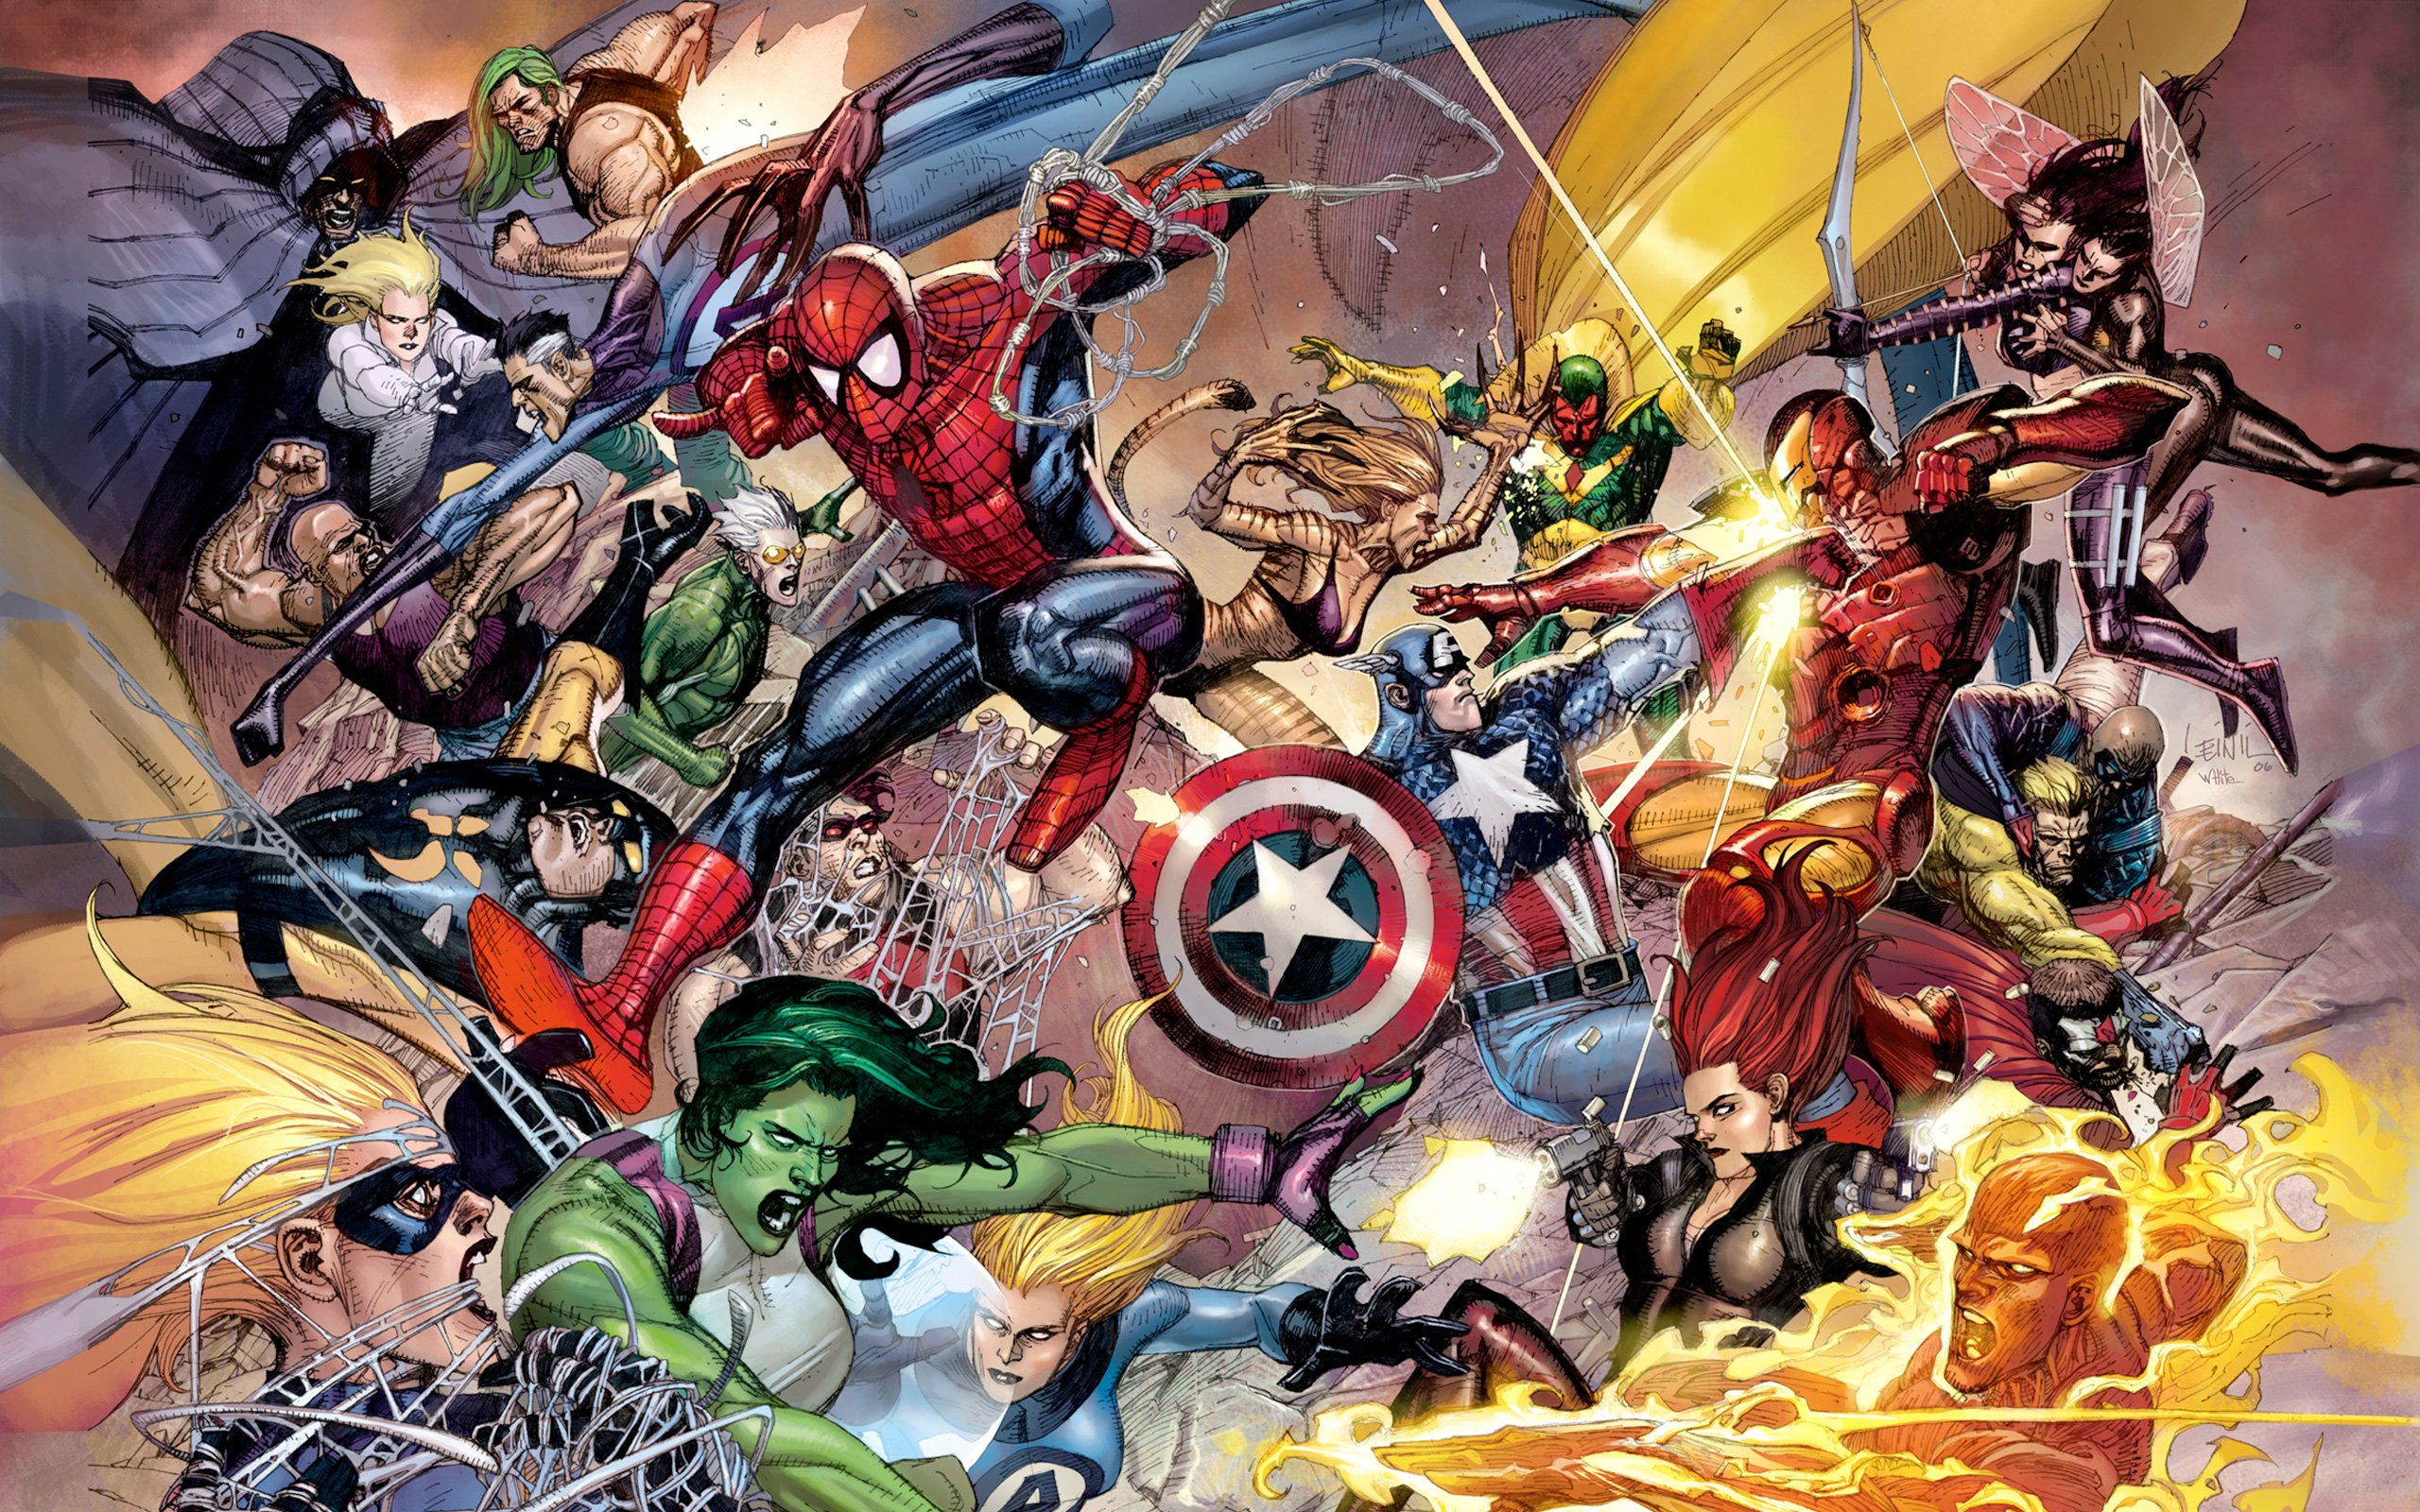 action fighting 1cacw warrior sci fi avengers wallpaper background 2560x1600